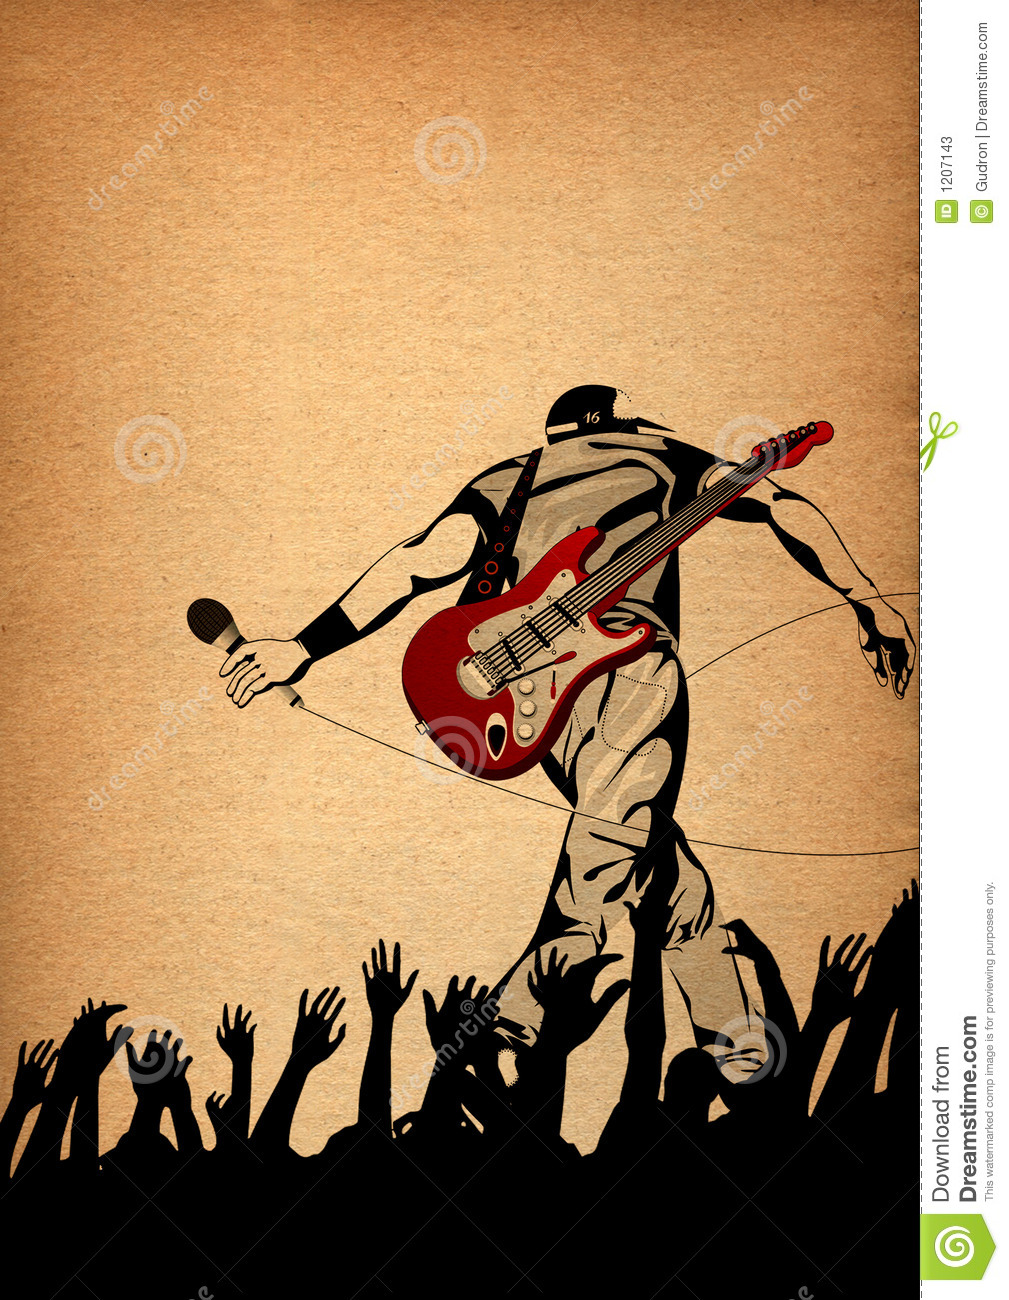 Energic live performance on the stage,conceptual illustration